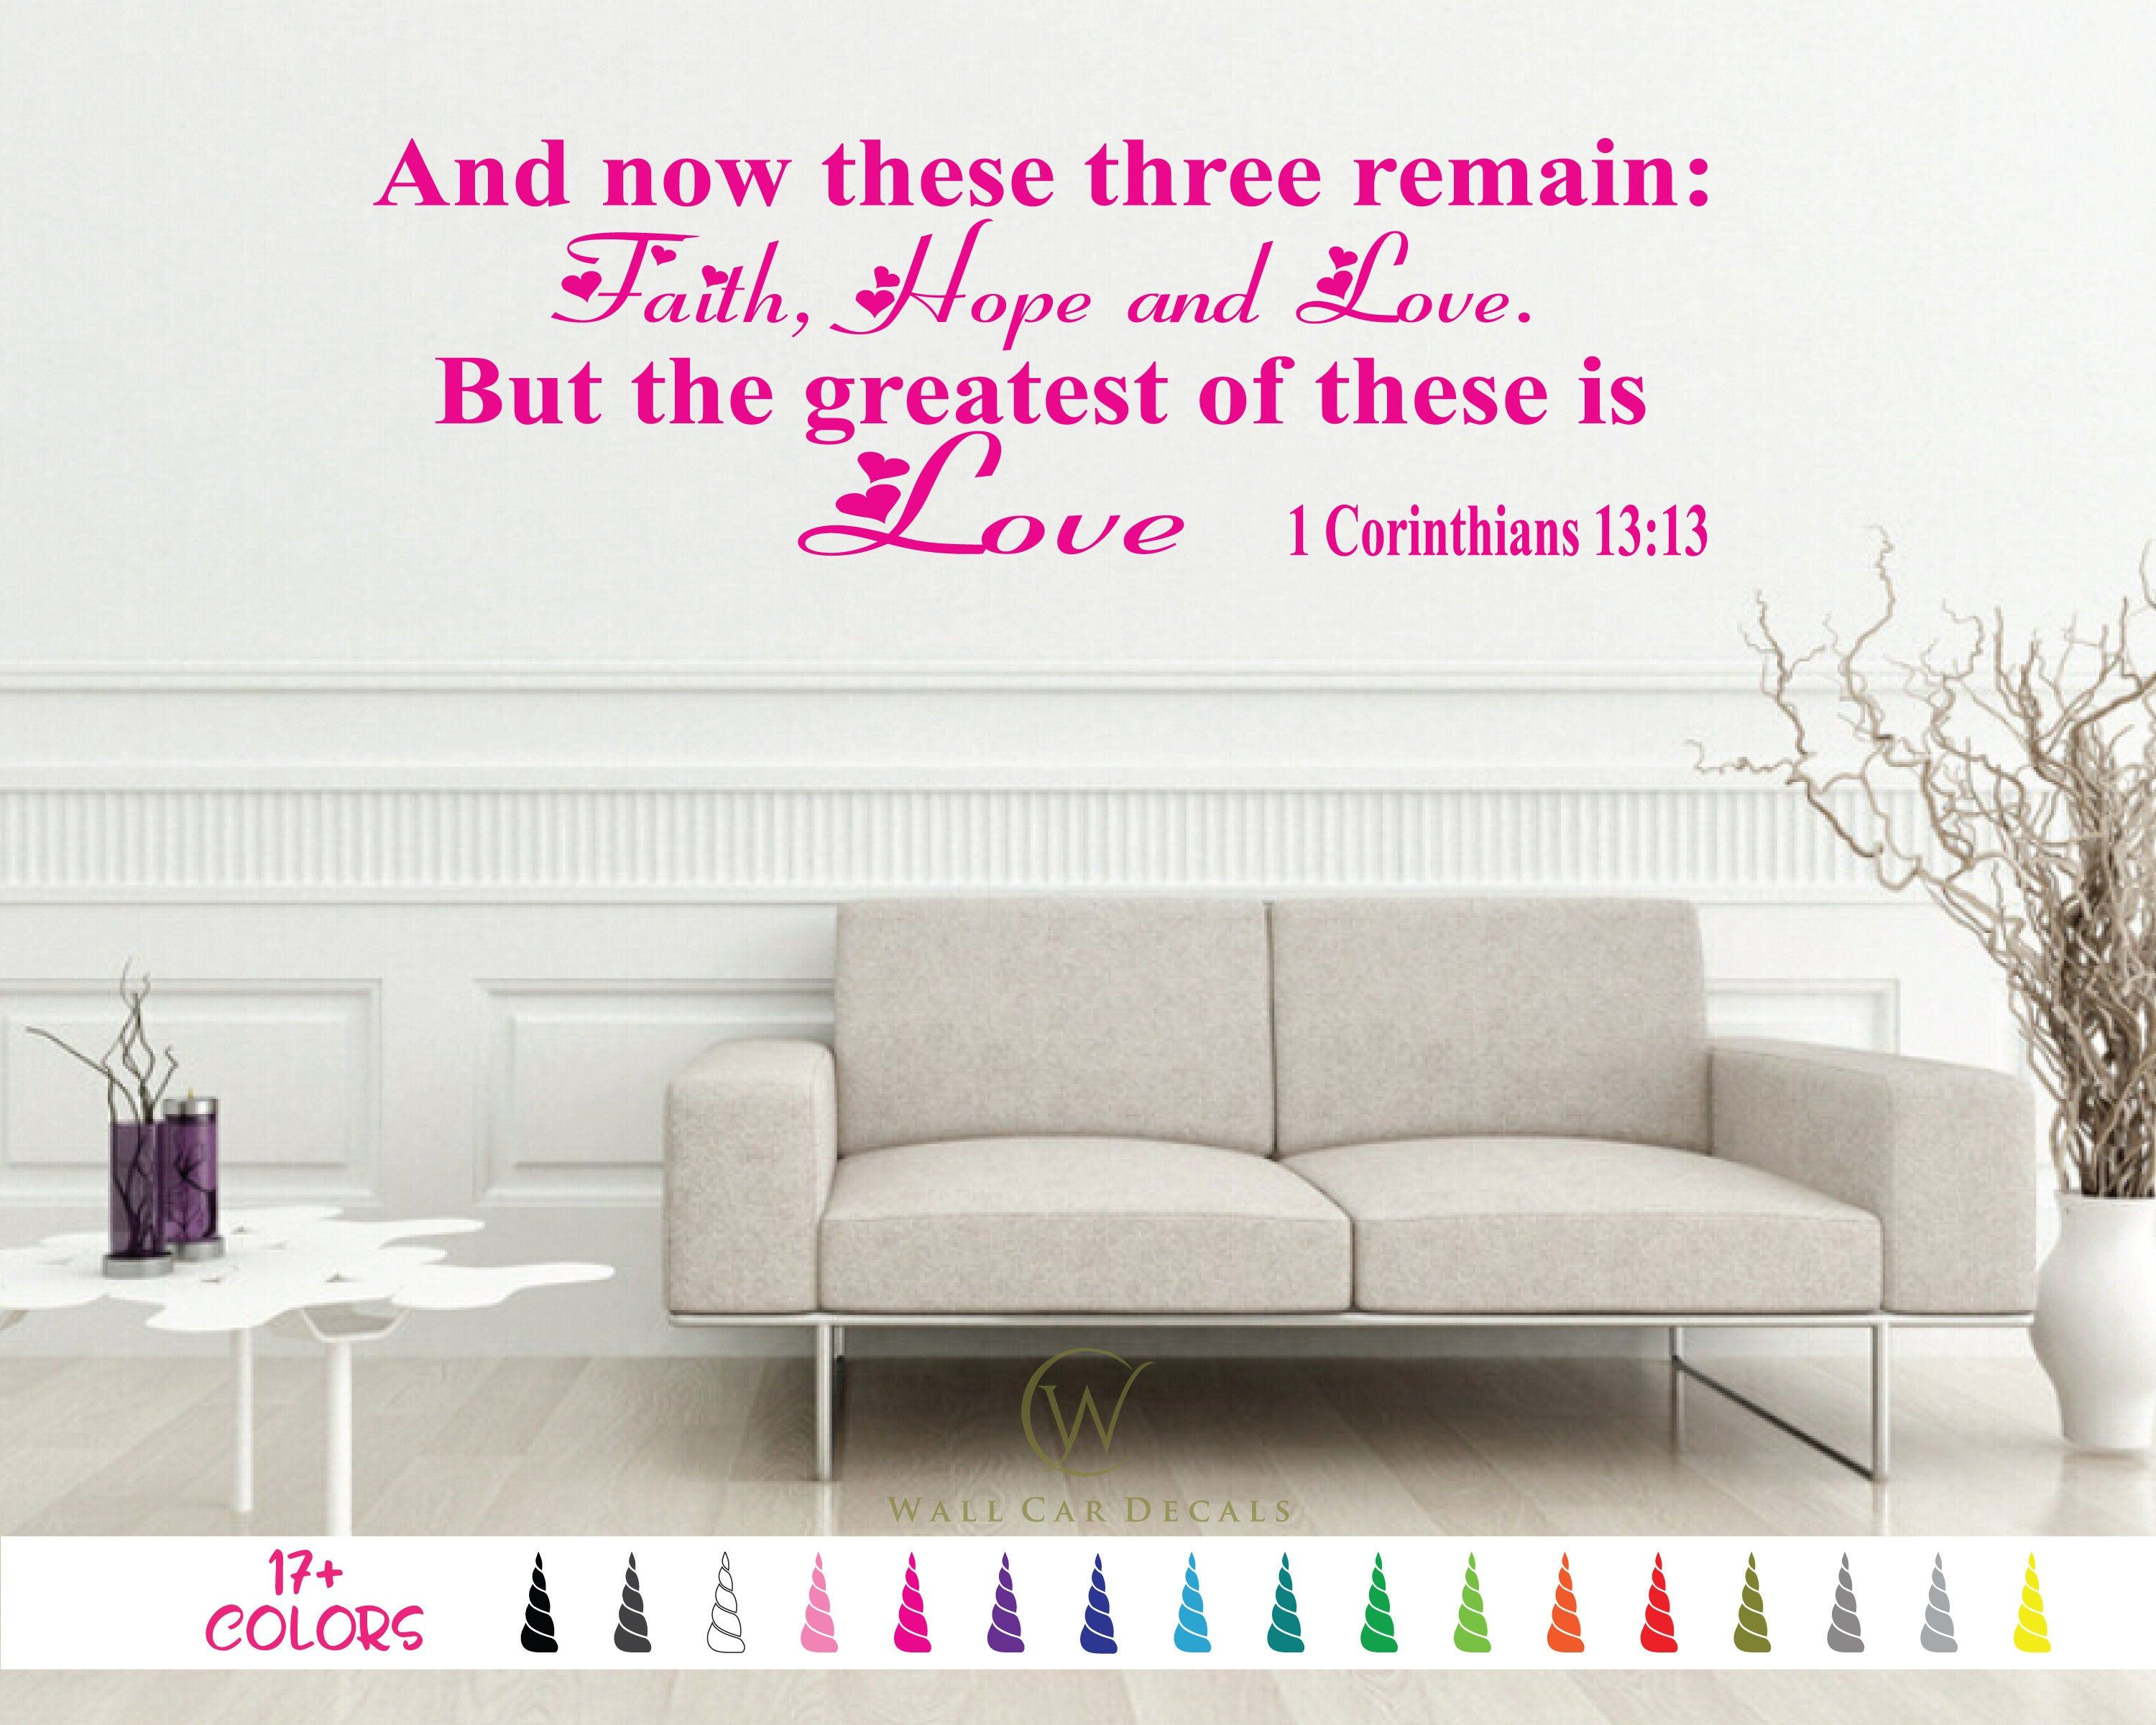 1 Corinthians 13 13 Wall Decal And Now These Three Remain Faith Hope And Love But The Greatest Of These Is Love Quote Sticker Vinyl Decals In 2020 Bible Verse Wall